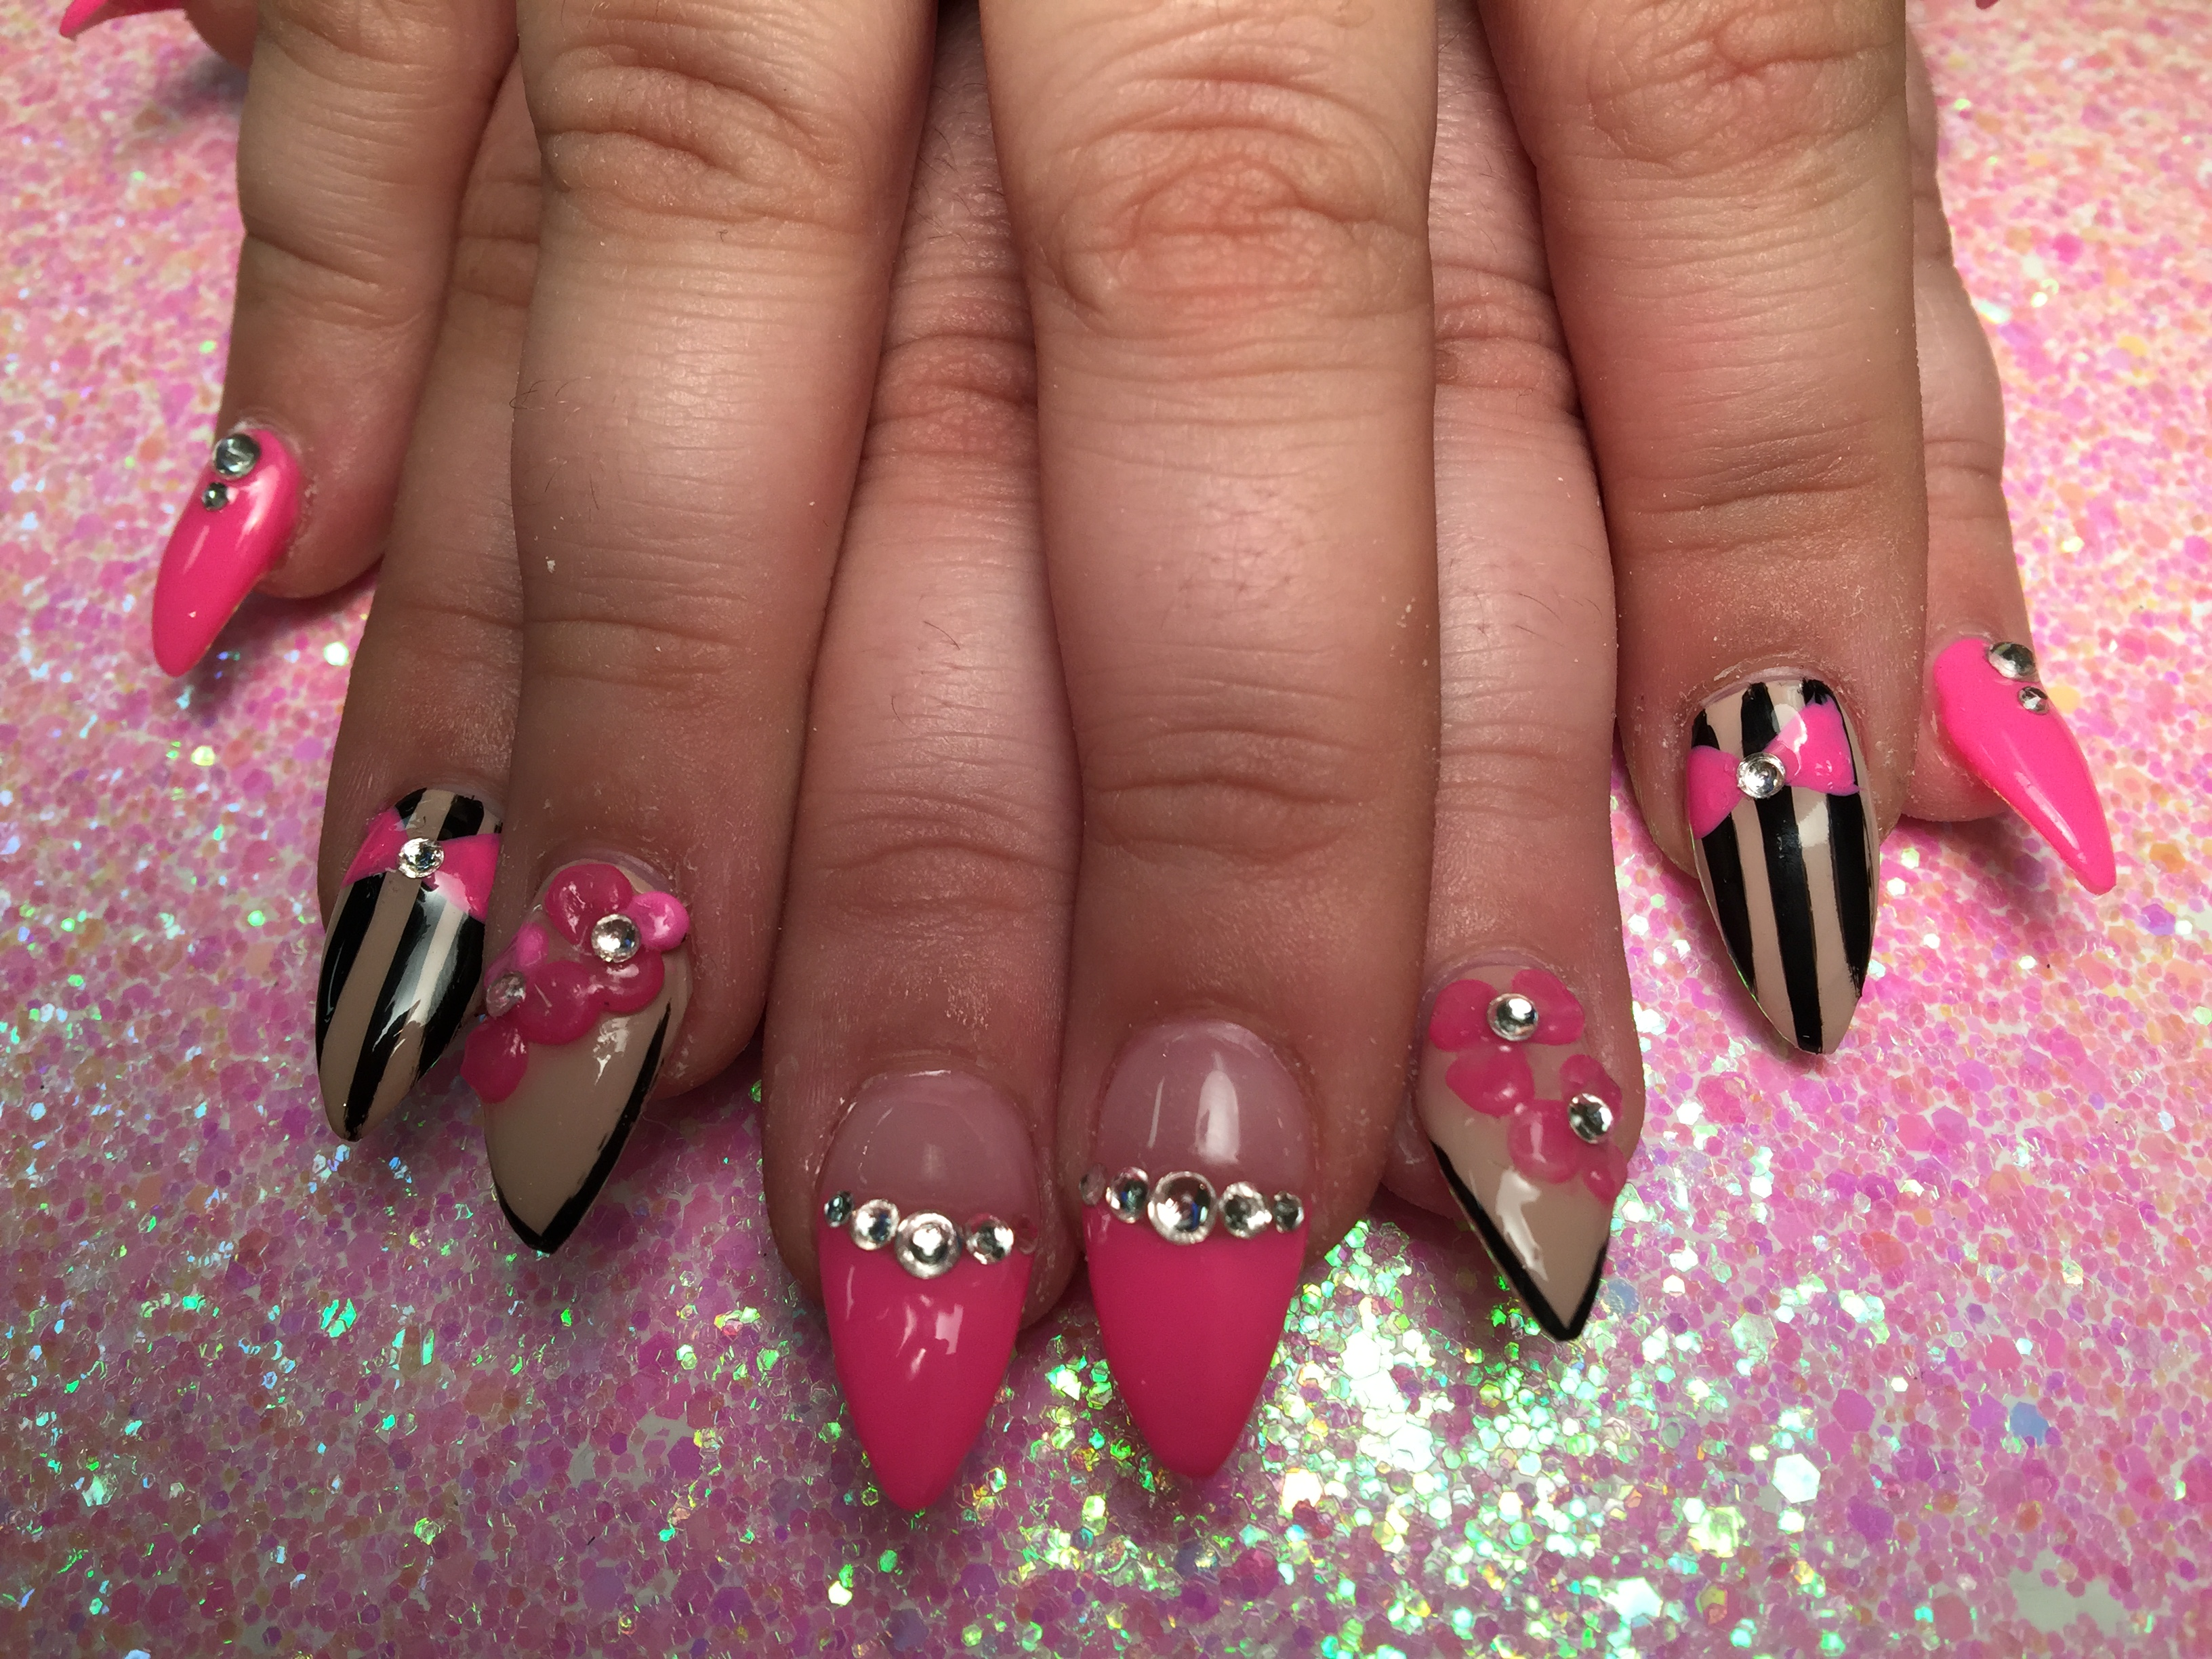 Stiletto Shoe Tips Nail Art Design By Top Nails Clarksville Tn